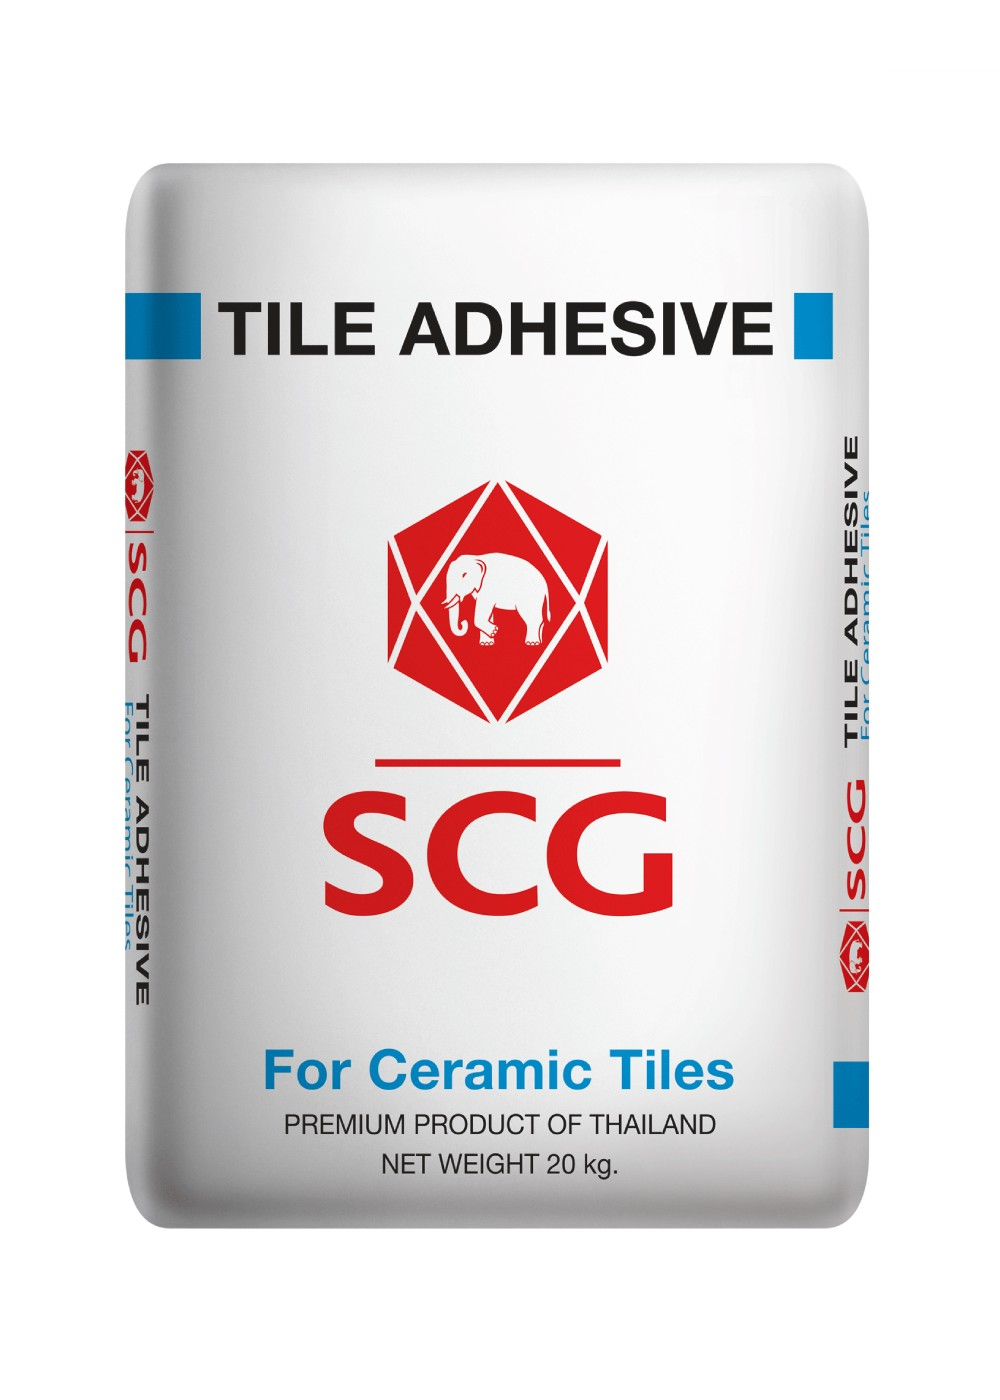 SCG Tile Adhesive for ceramic tiles